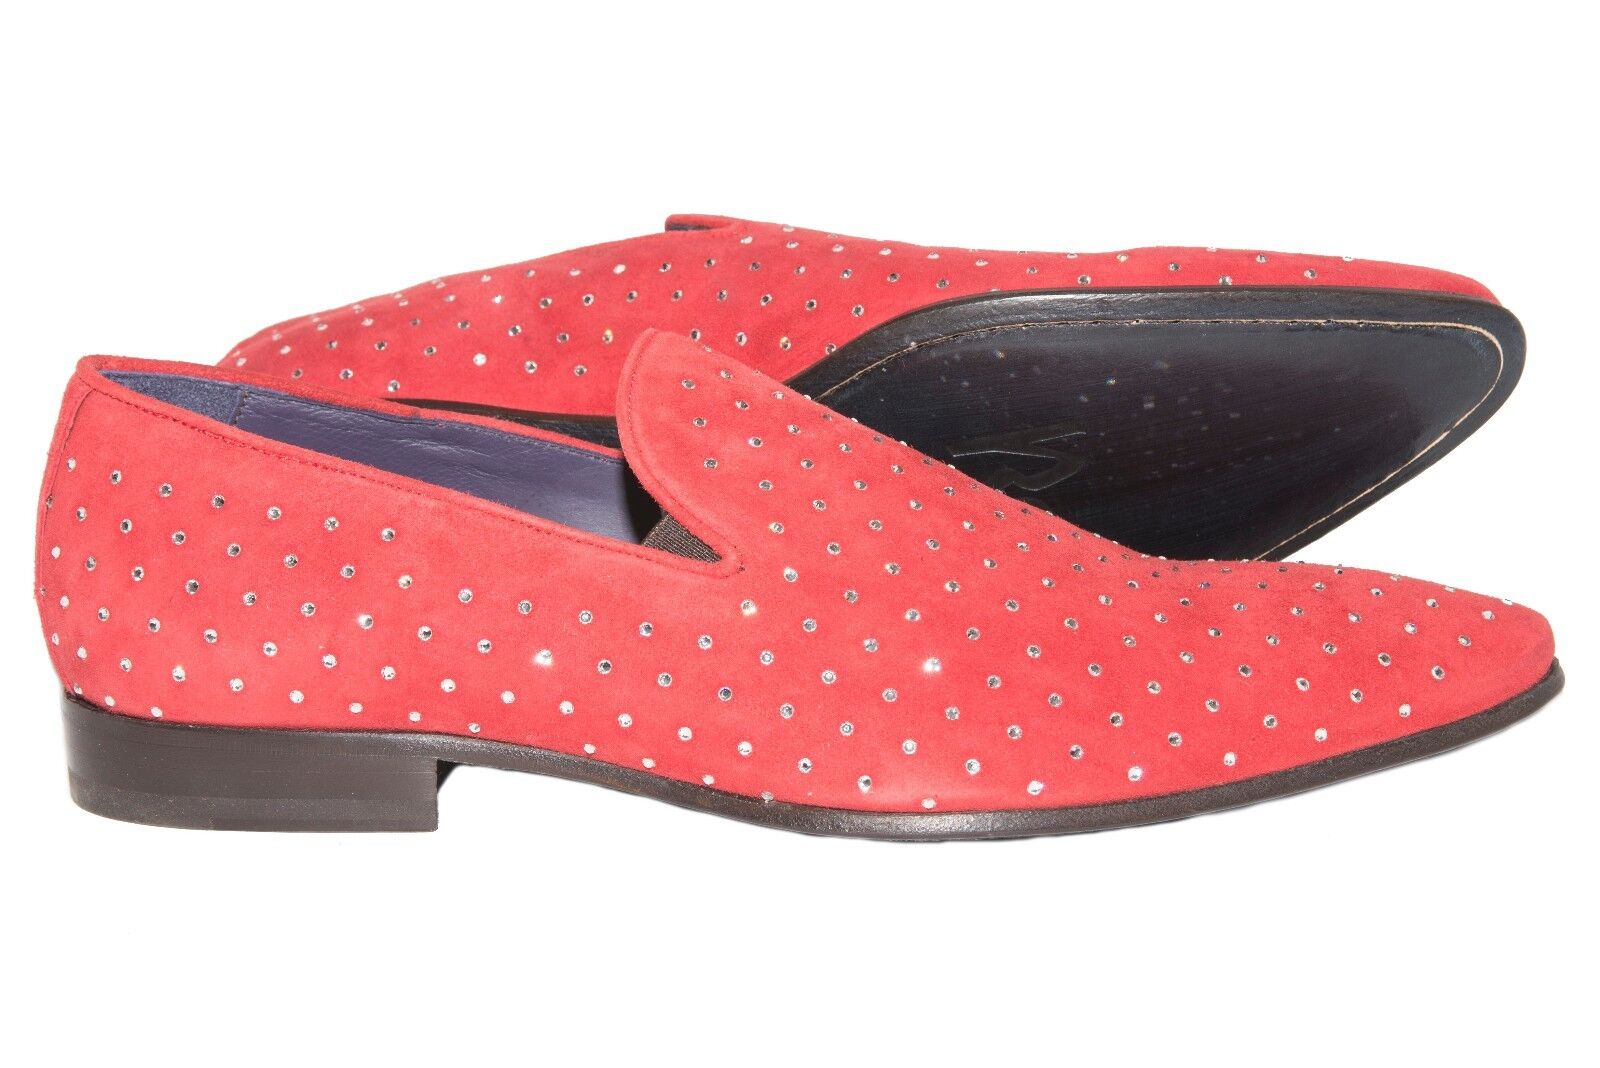 Roberto Guerrini B2282 Italian mens red suede shoes with swarovski elements